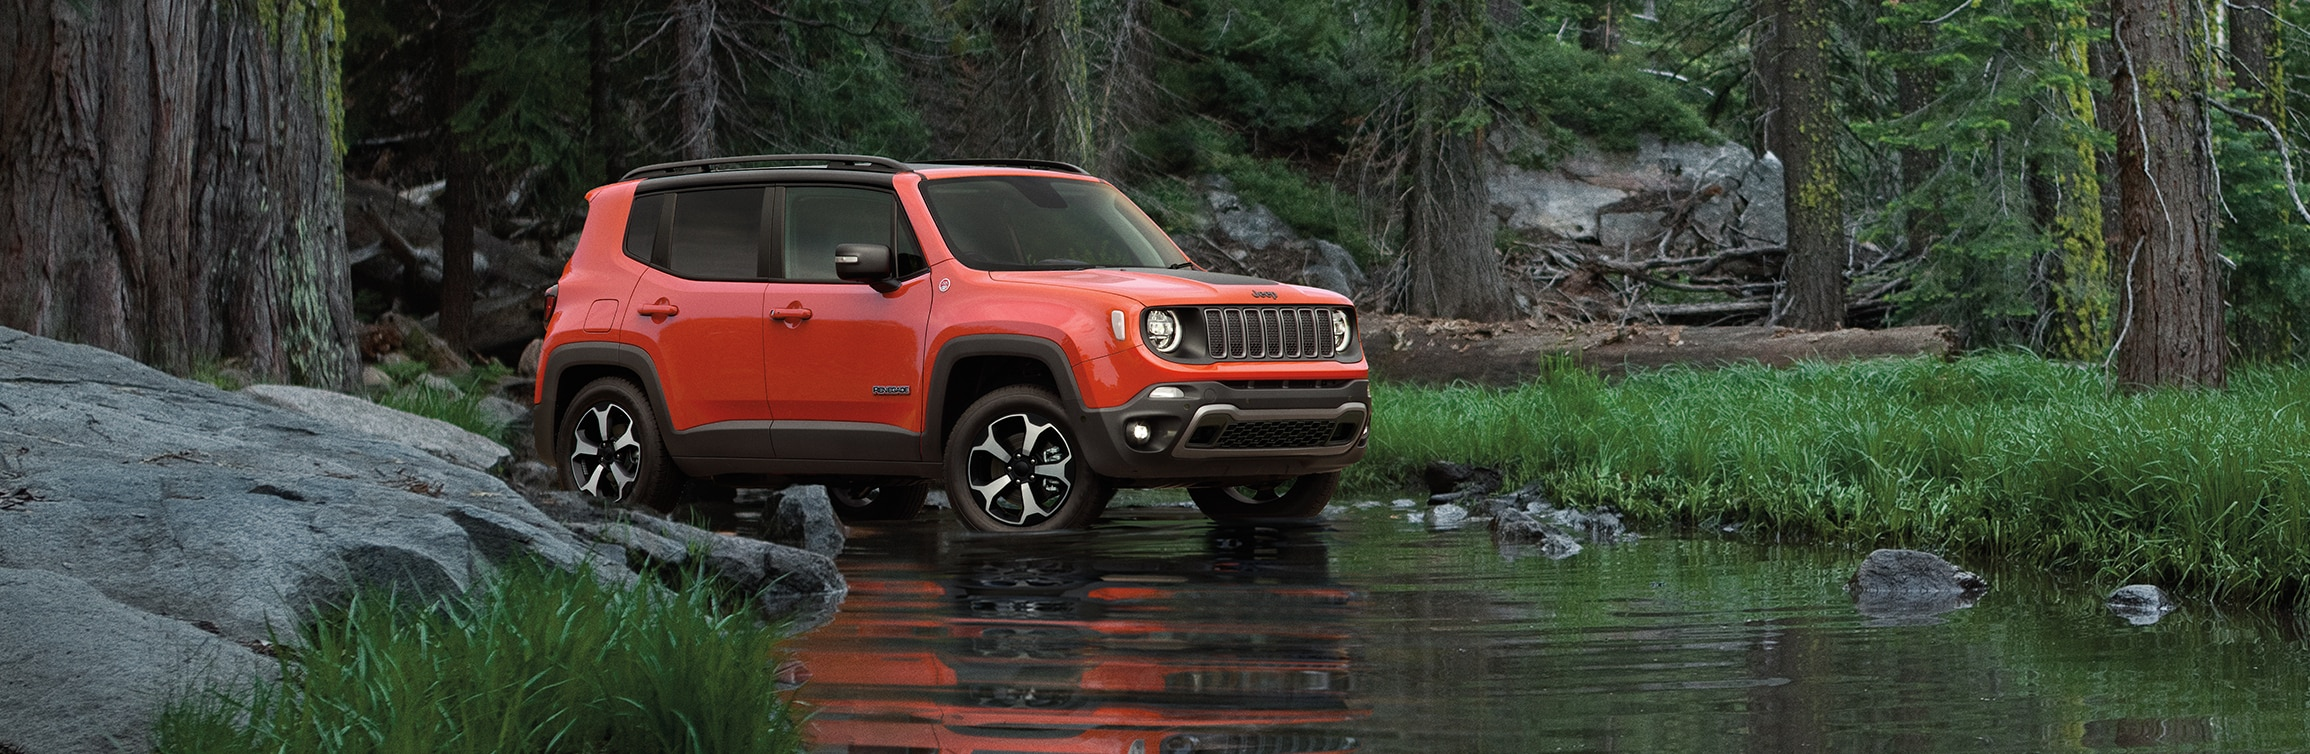 2020 Jeep Renegade Arkansas